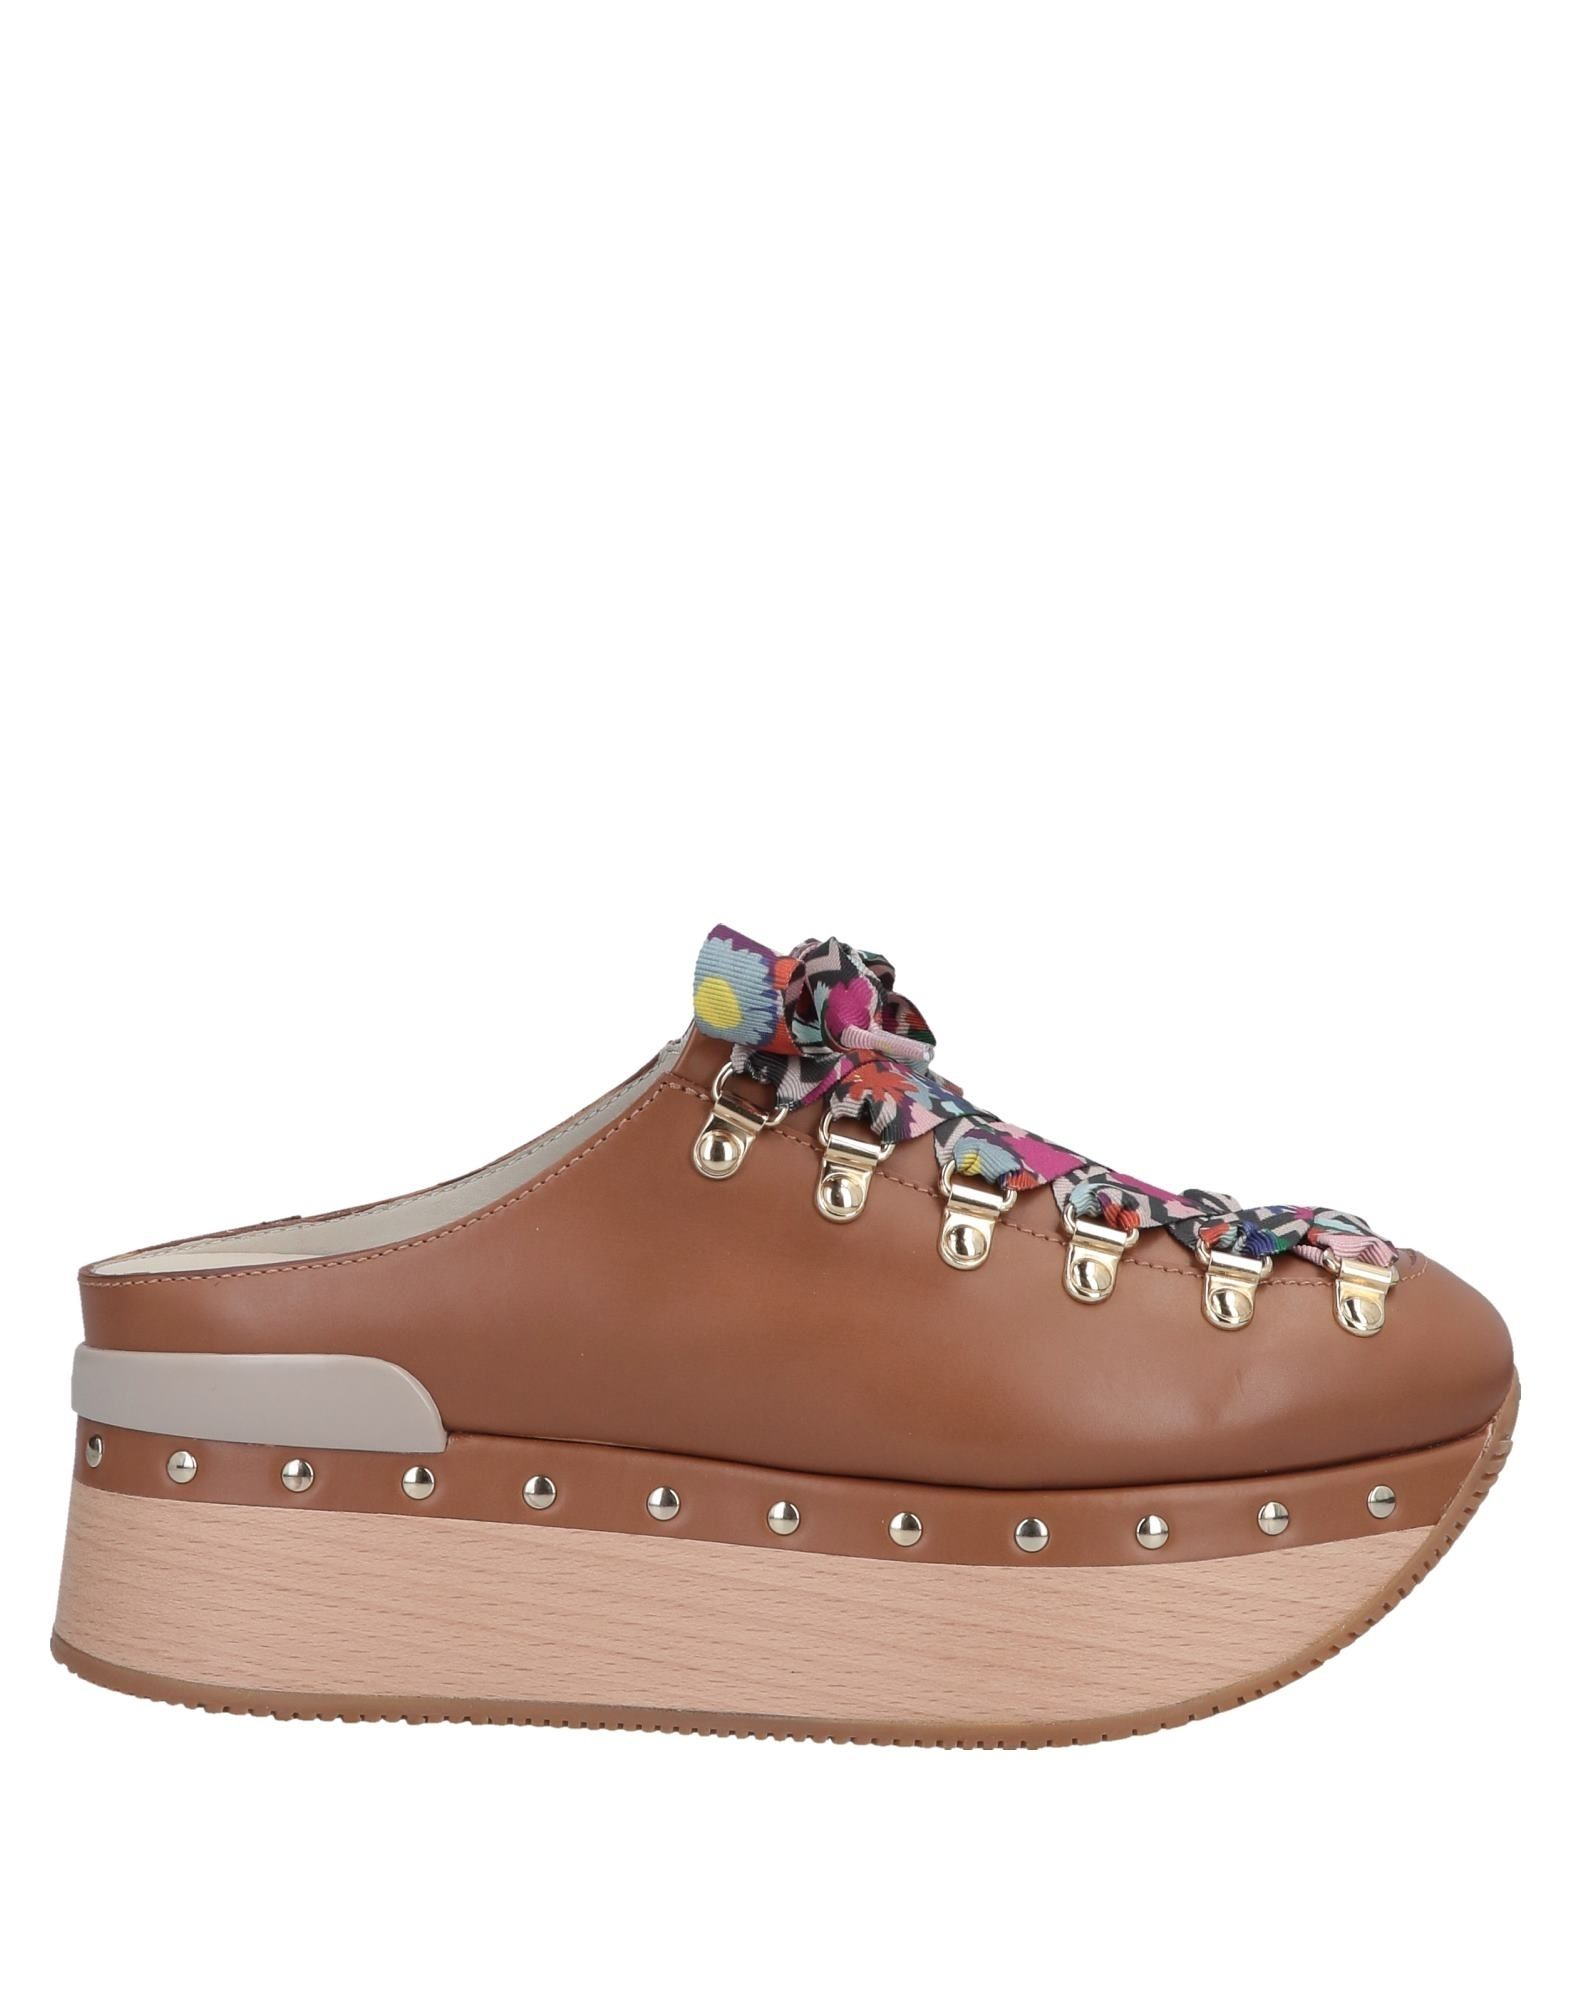 HOGAN Mules. leather, logo, studs, solid color, laces, round toeline, flatform, wooden wedge, leather lining, rubber sole, contains non-textile parts of animal origin. Soft Leather